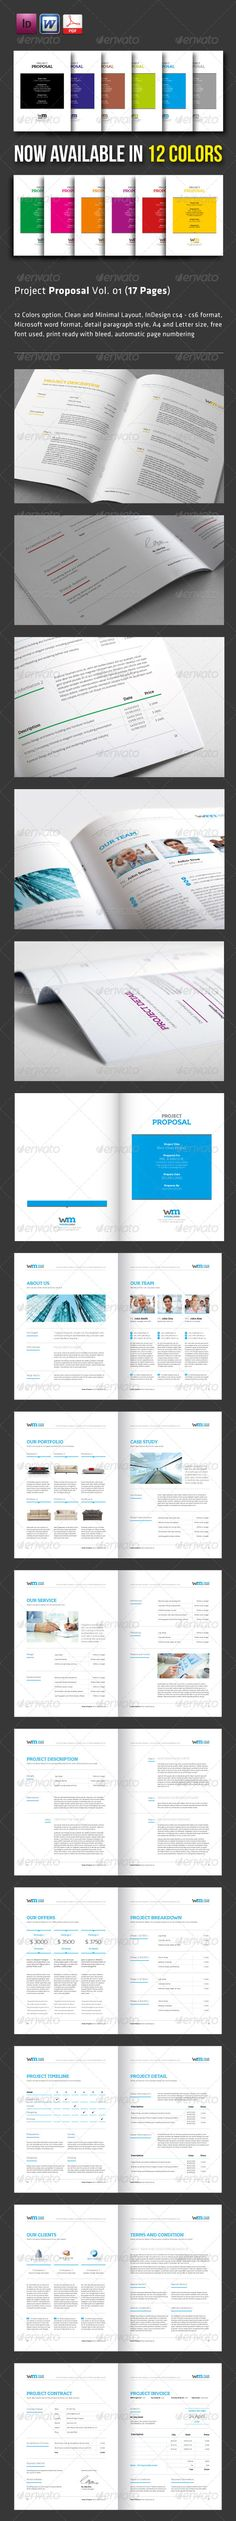 Proposal Template Microsoft Word It Consulting Services Proposal Template  Proposal Templates .